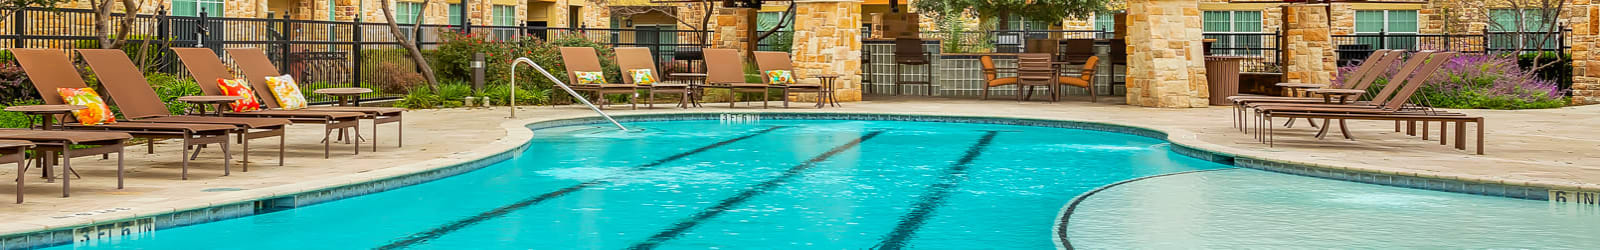 Pet friendly at Villas in Westover Hills in San Antonio, Texas